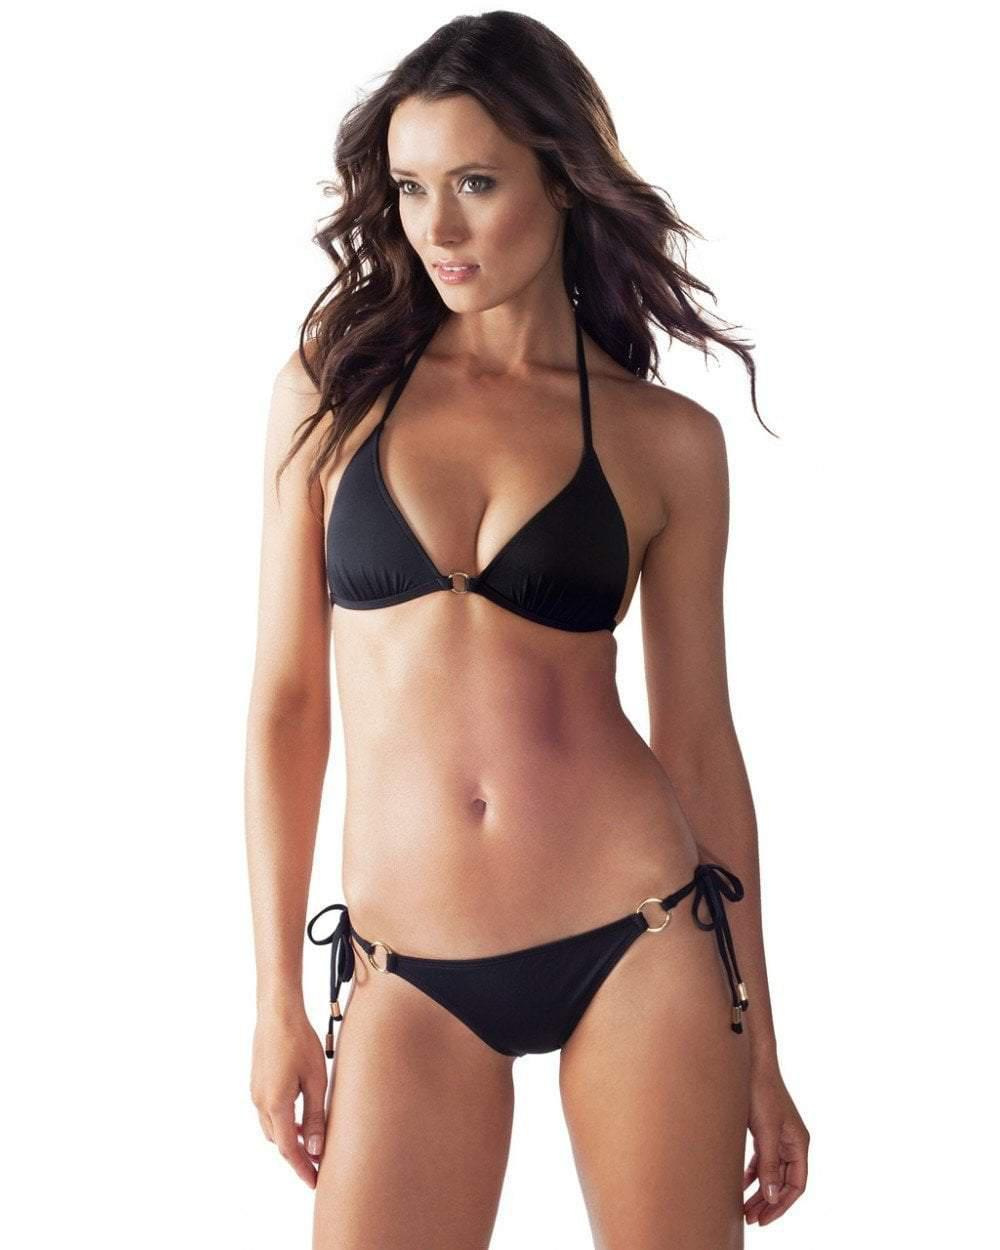 676ecfba0c Voda Swim. Women's Black Envy Push Up Hoop String Top. $79 From Couture  Candy